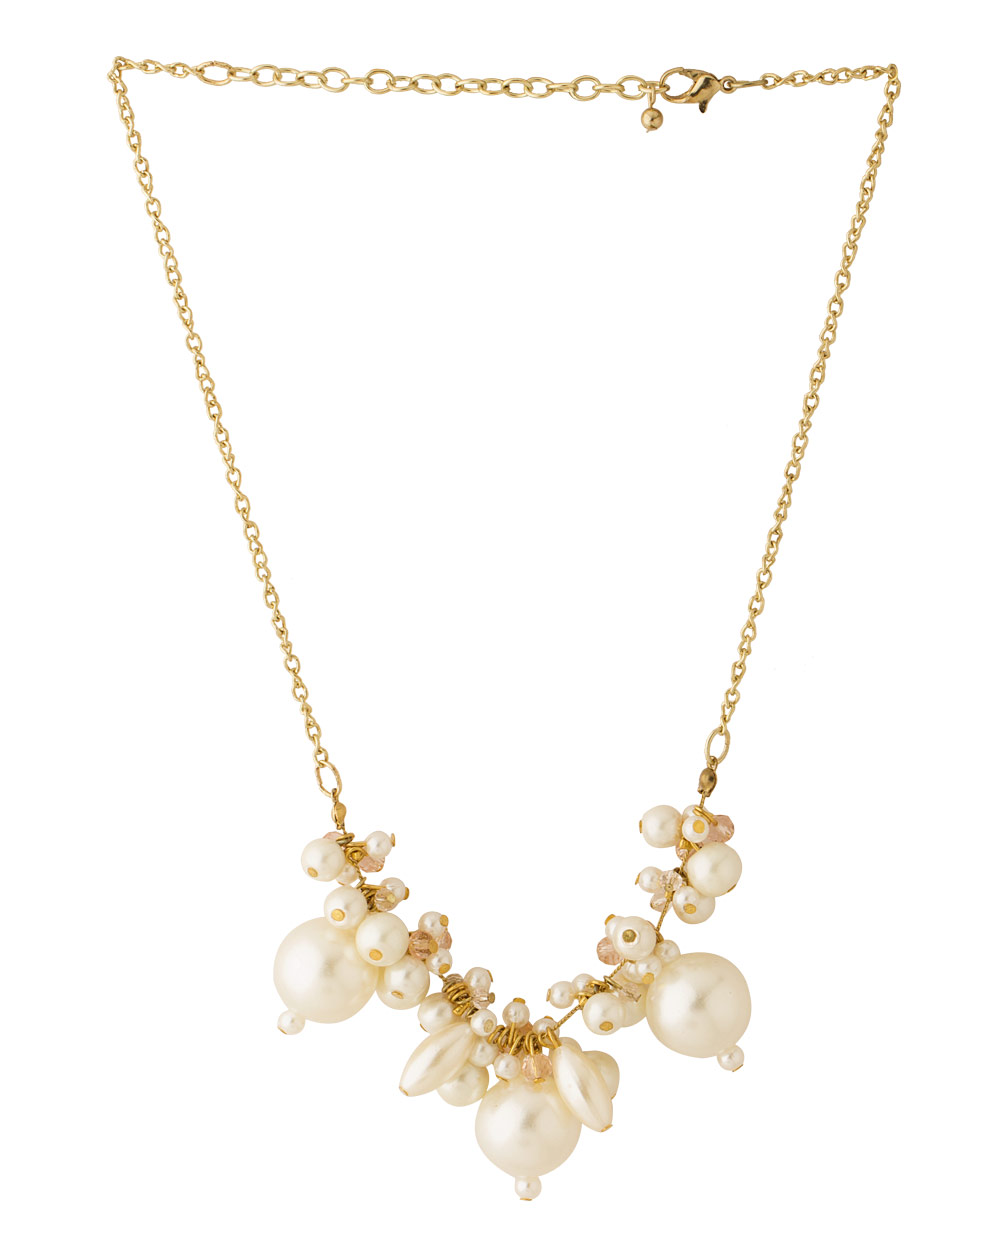 Buy Pearl Bead Necklace With Golden Chain Online India | Voylla